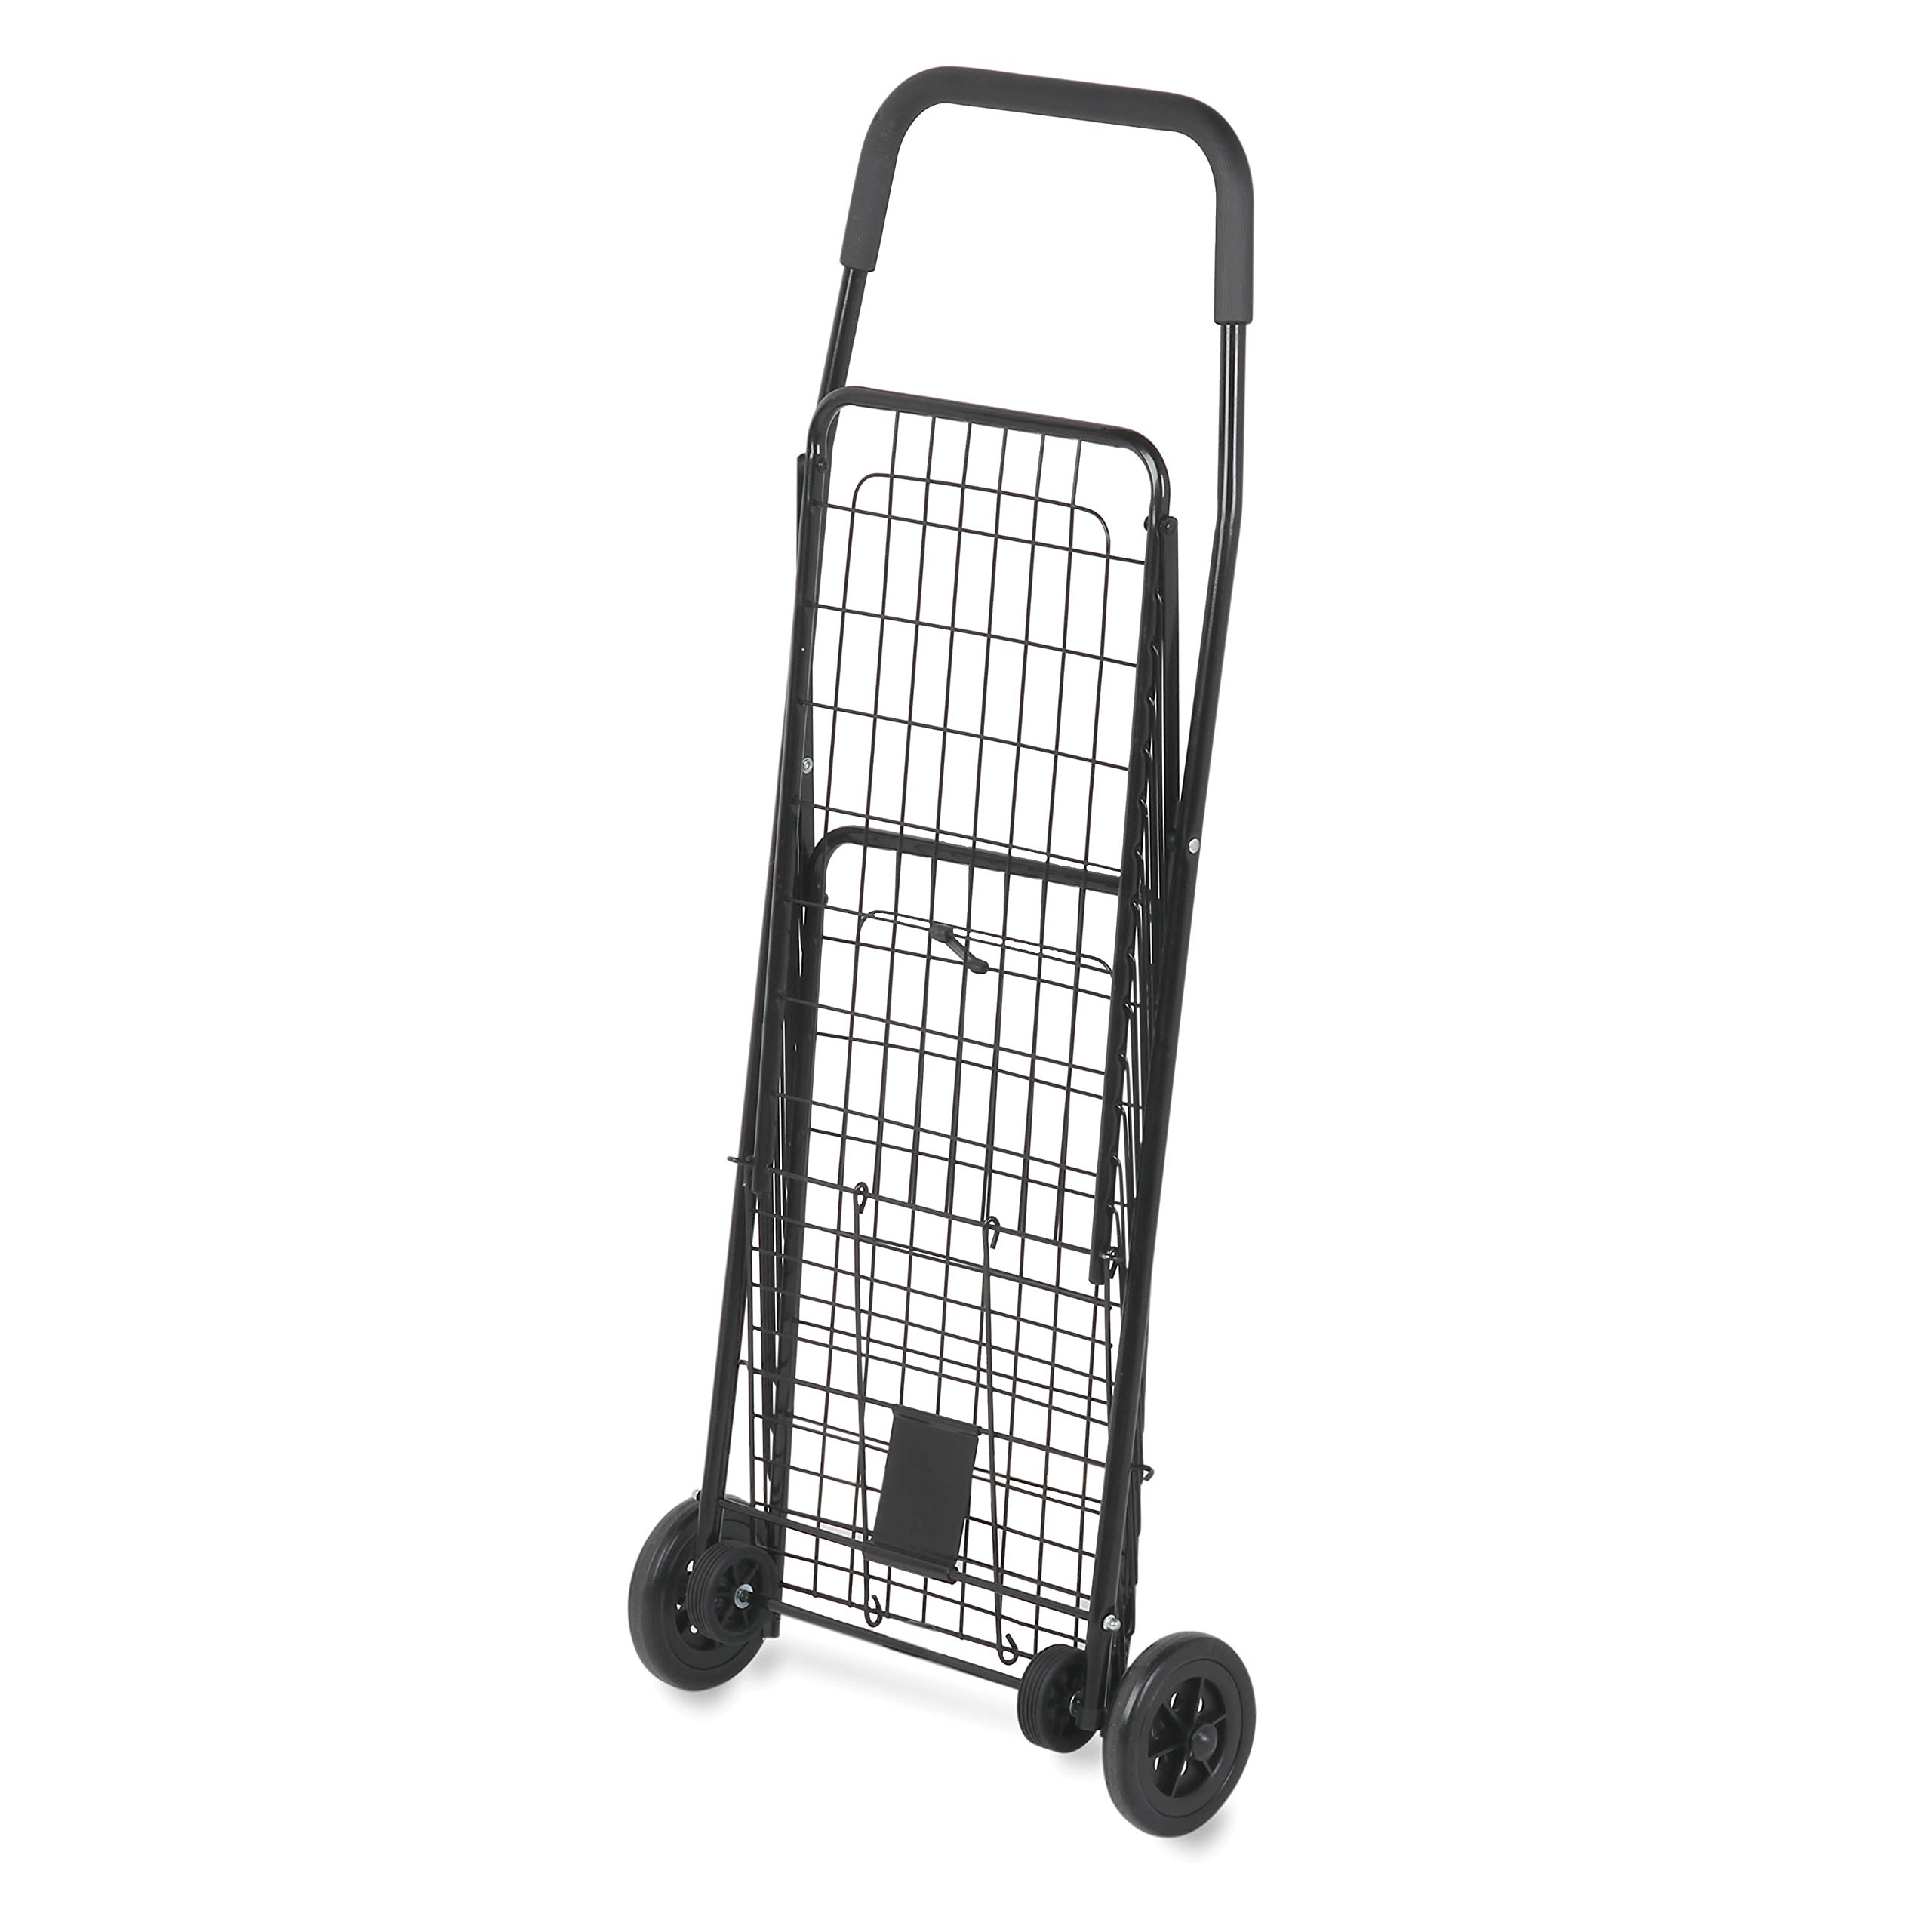 Honey-Can-Do CRT-01511 Medium Folding Shopping Cart Rolling 4-Wheel Utility Wagon, Black